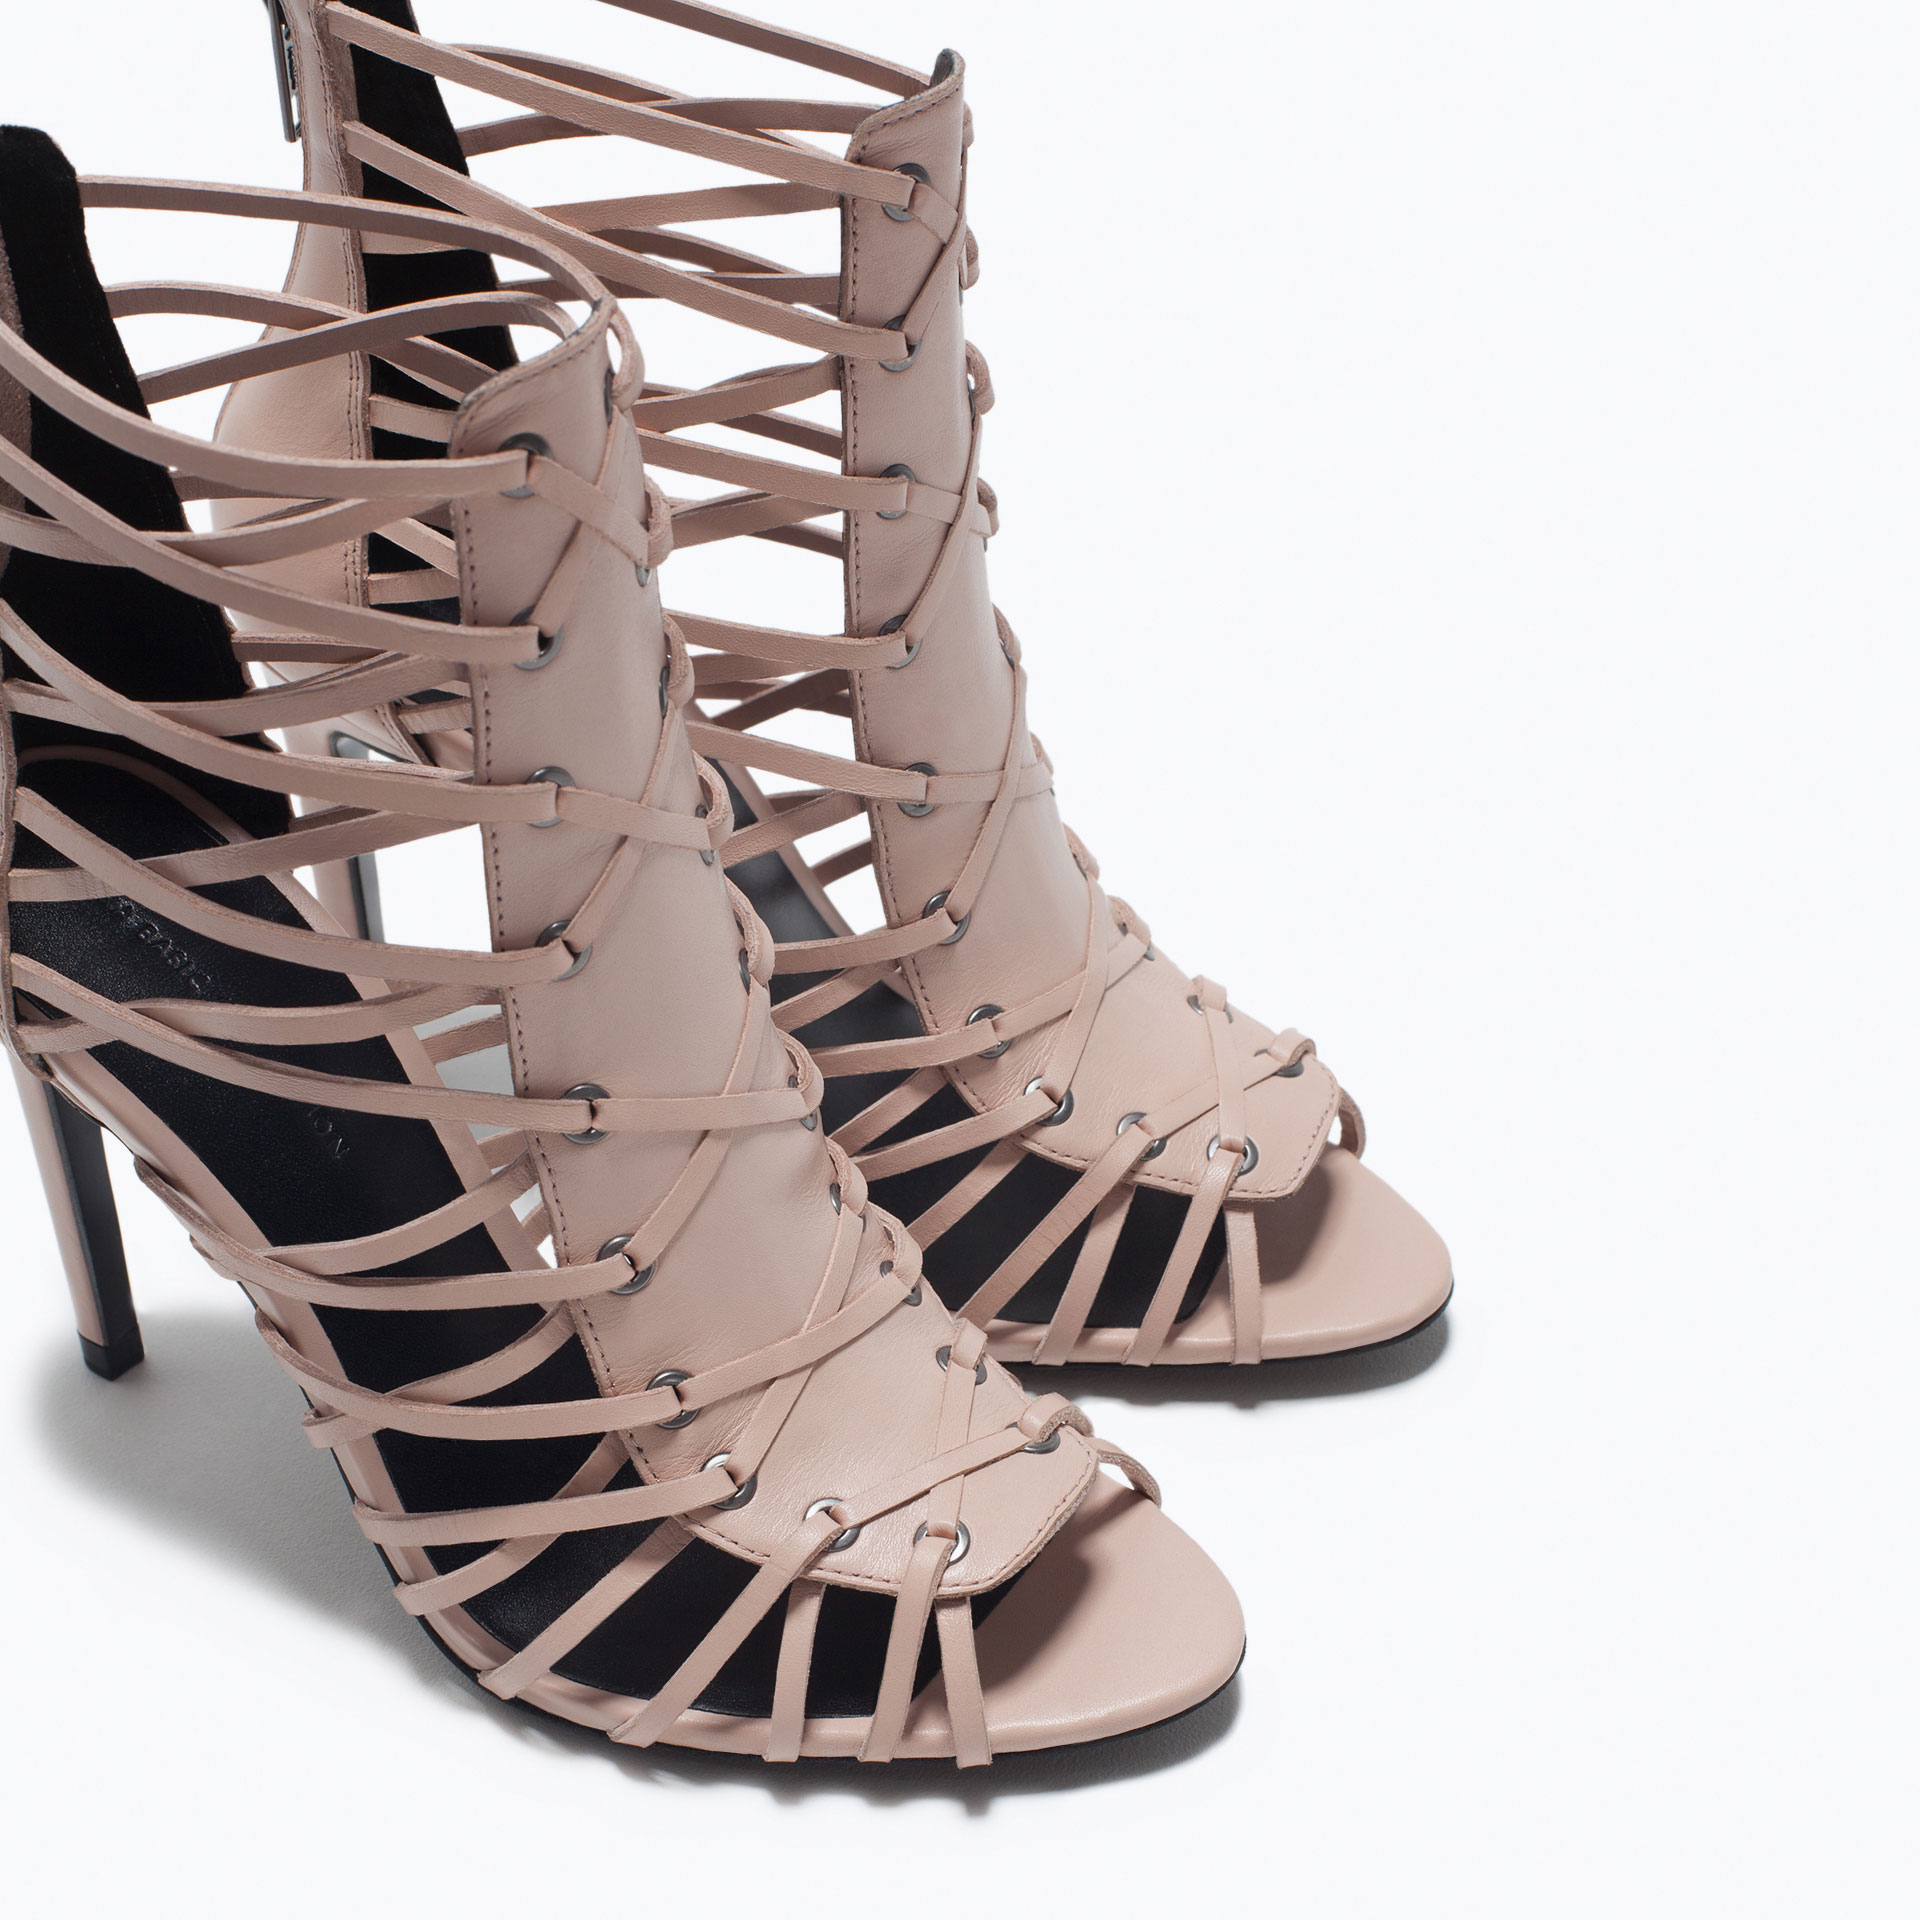 HIGH HEEL SANDAL - Heeled sandals - Shoes - WOMAN | ZARA United States